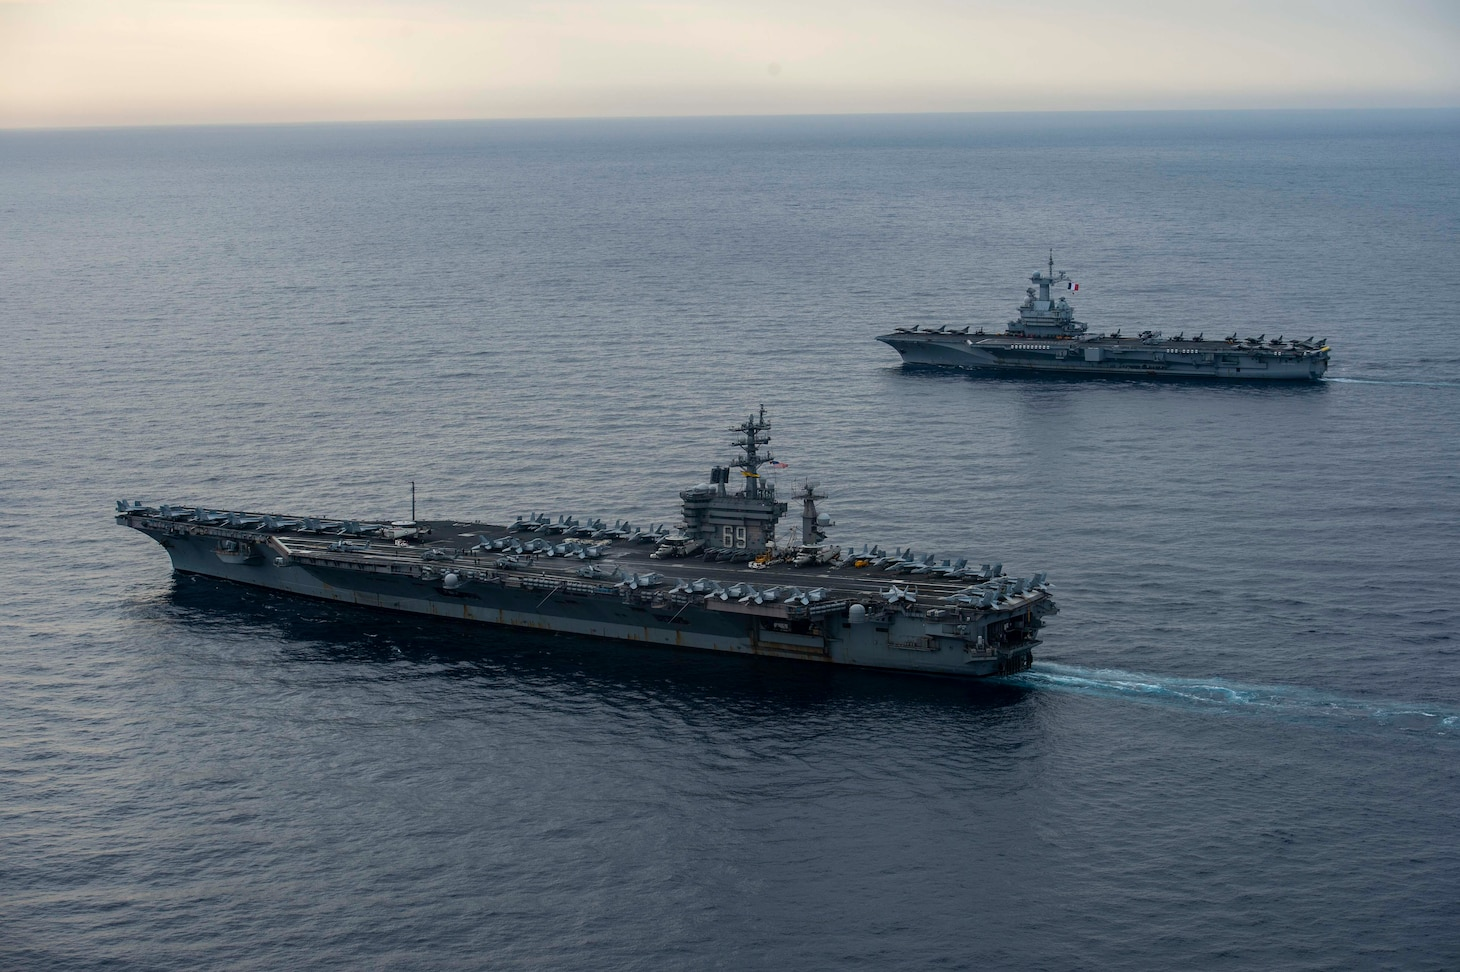 MEDITERRANEAN SEA (March 3, 2020) The aircraft carrier USS Dwight D. Eisenhower (CVN 69), left, and the French aircraft carrier FS Charles de Gaulle (R91) sail in formation. Ike is conducting operations in the Mediterranean Sea as part of the USS Dwight D. Eisenhower Carrier Strike Group.